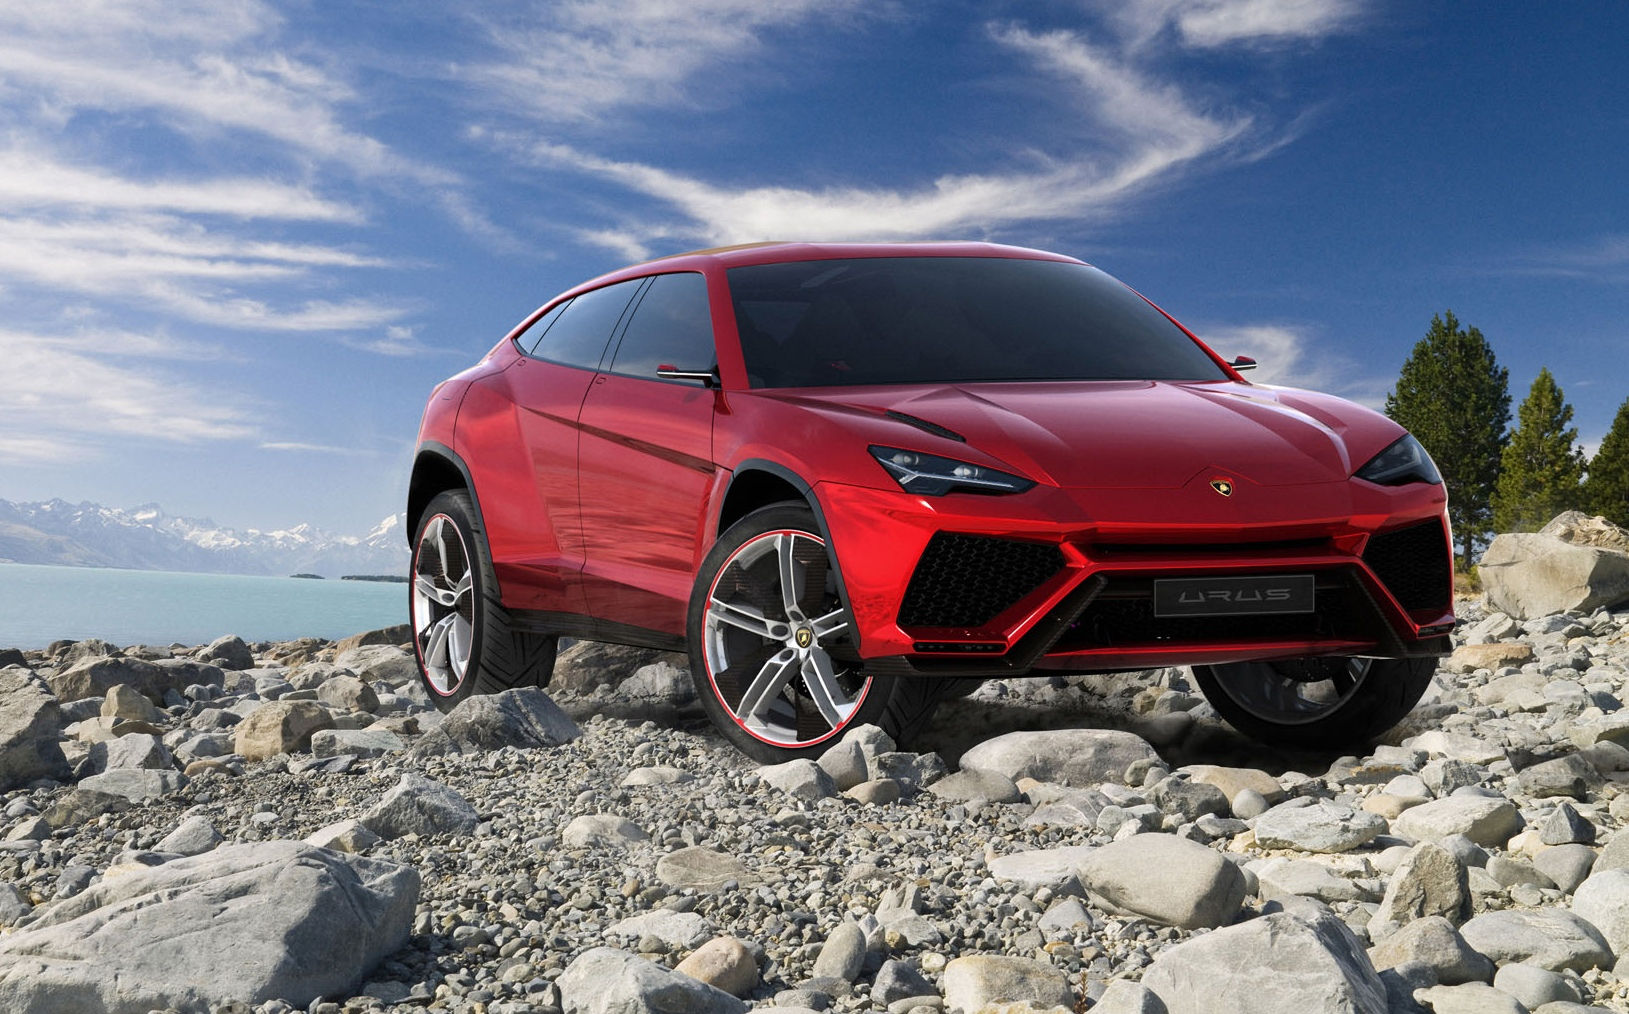 Lamborghini Geländewagen Lamborghini Betting Big On The Urus Expects Sales To Double After